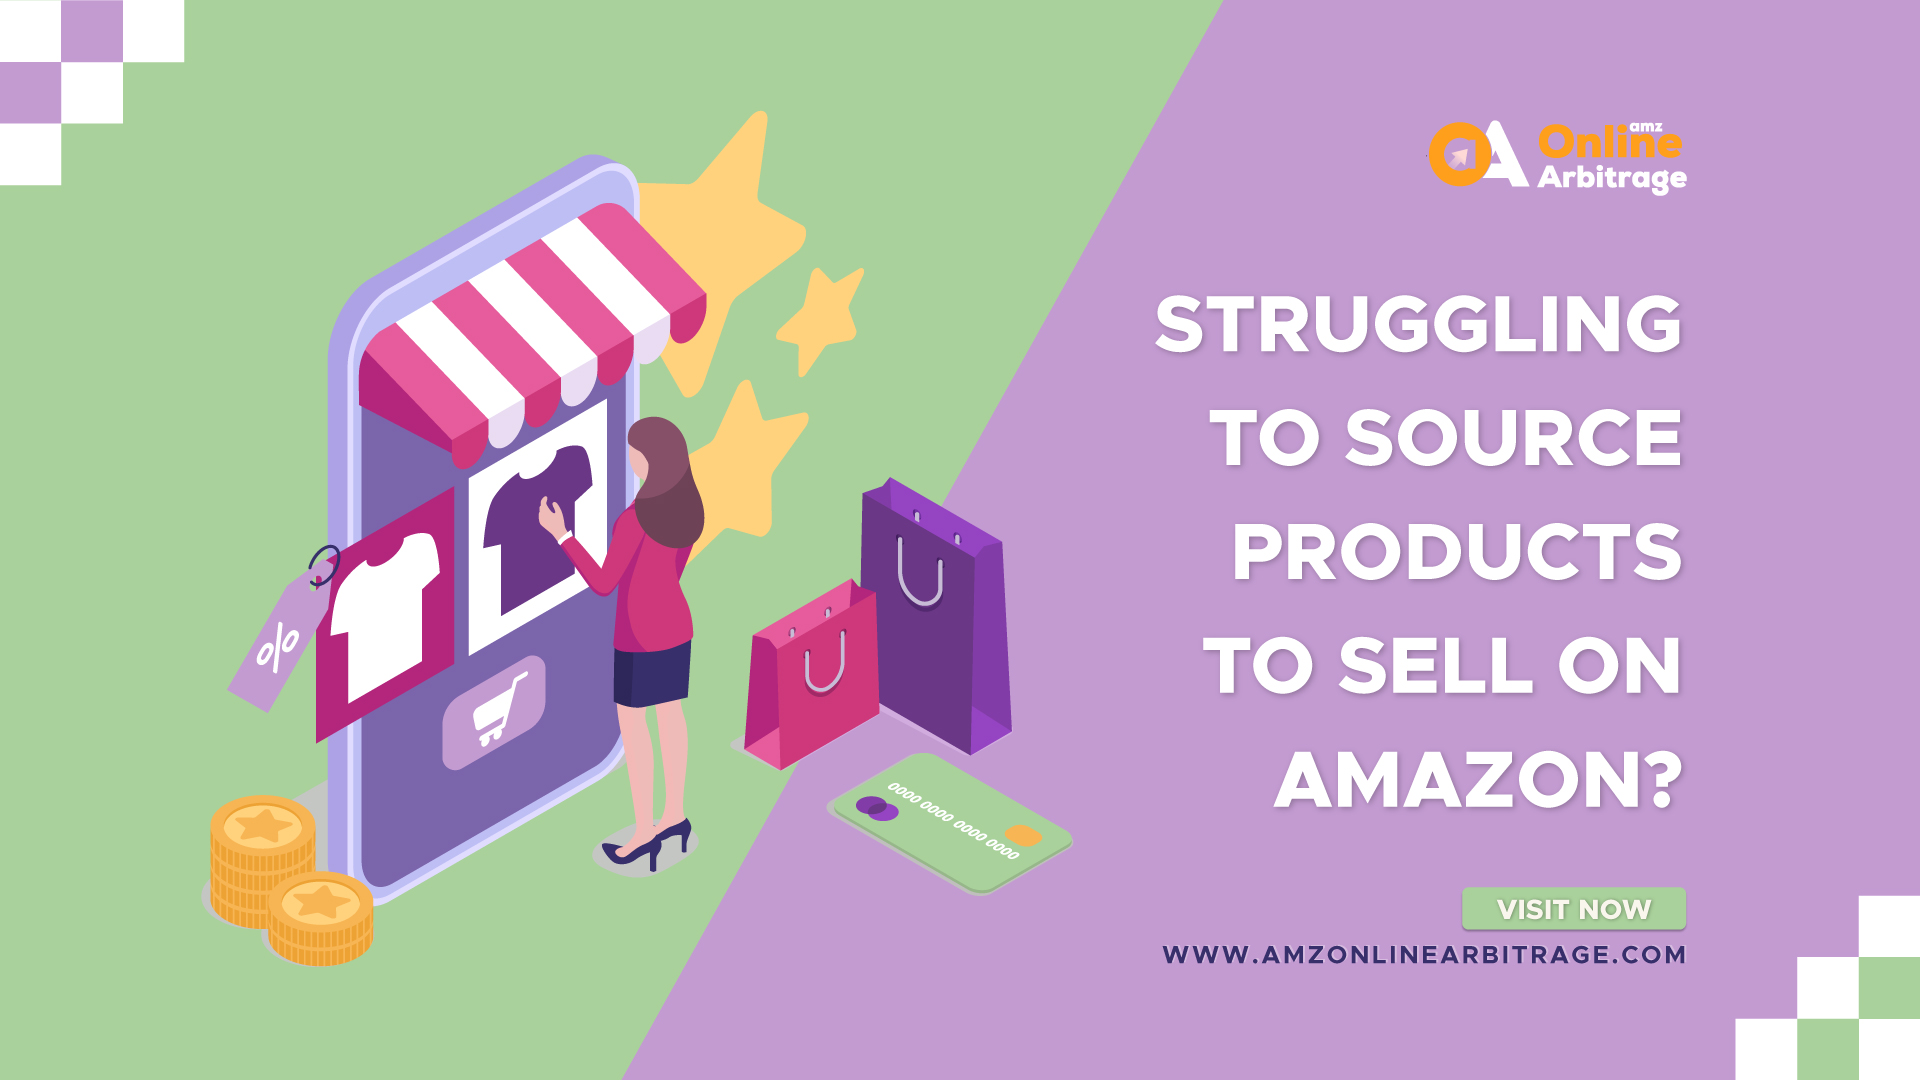 STRUGGLING TO SOURCE PRODUCTS TO SELL ON AMAZON?